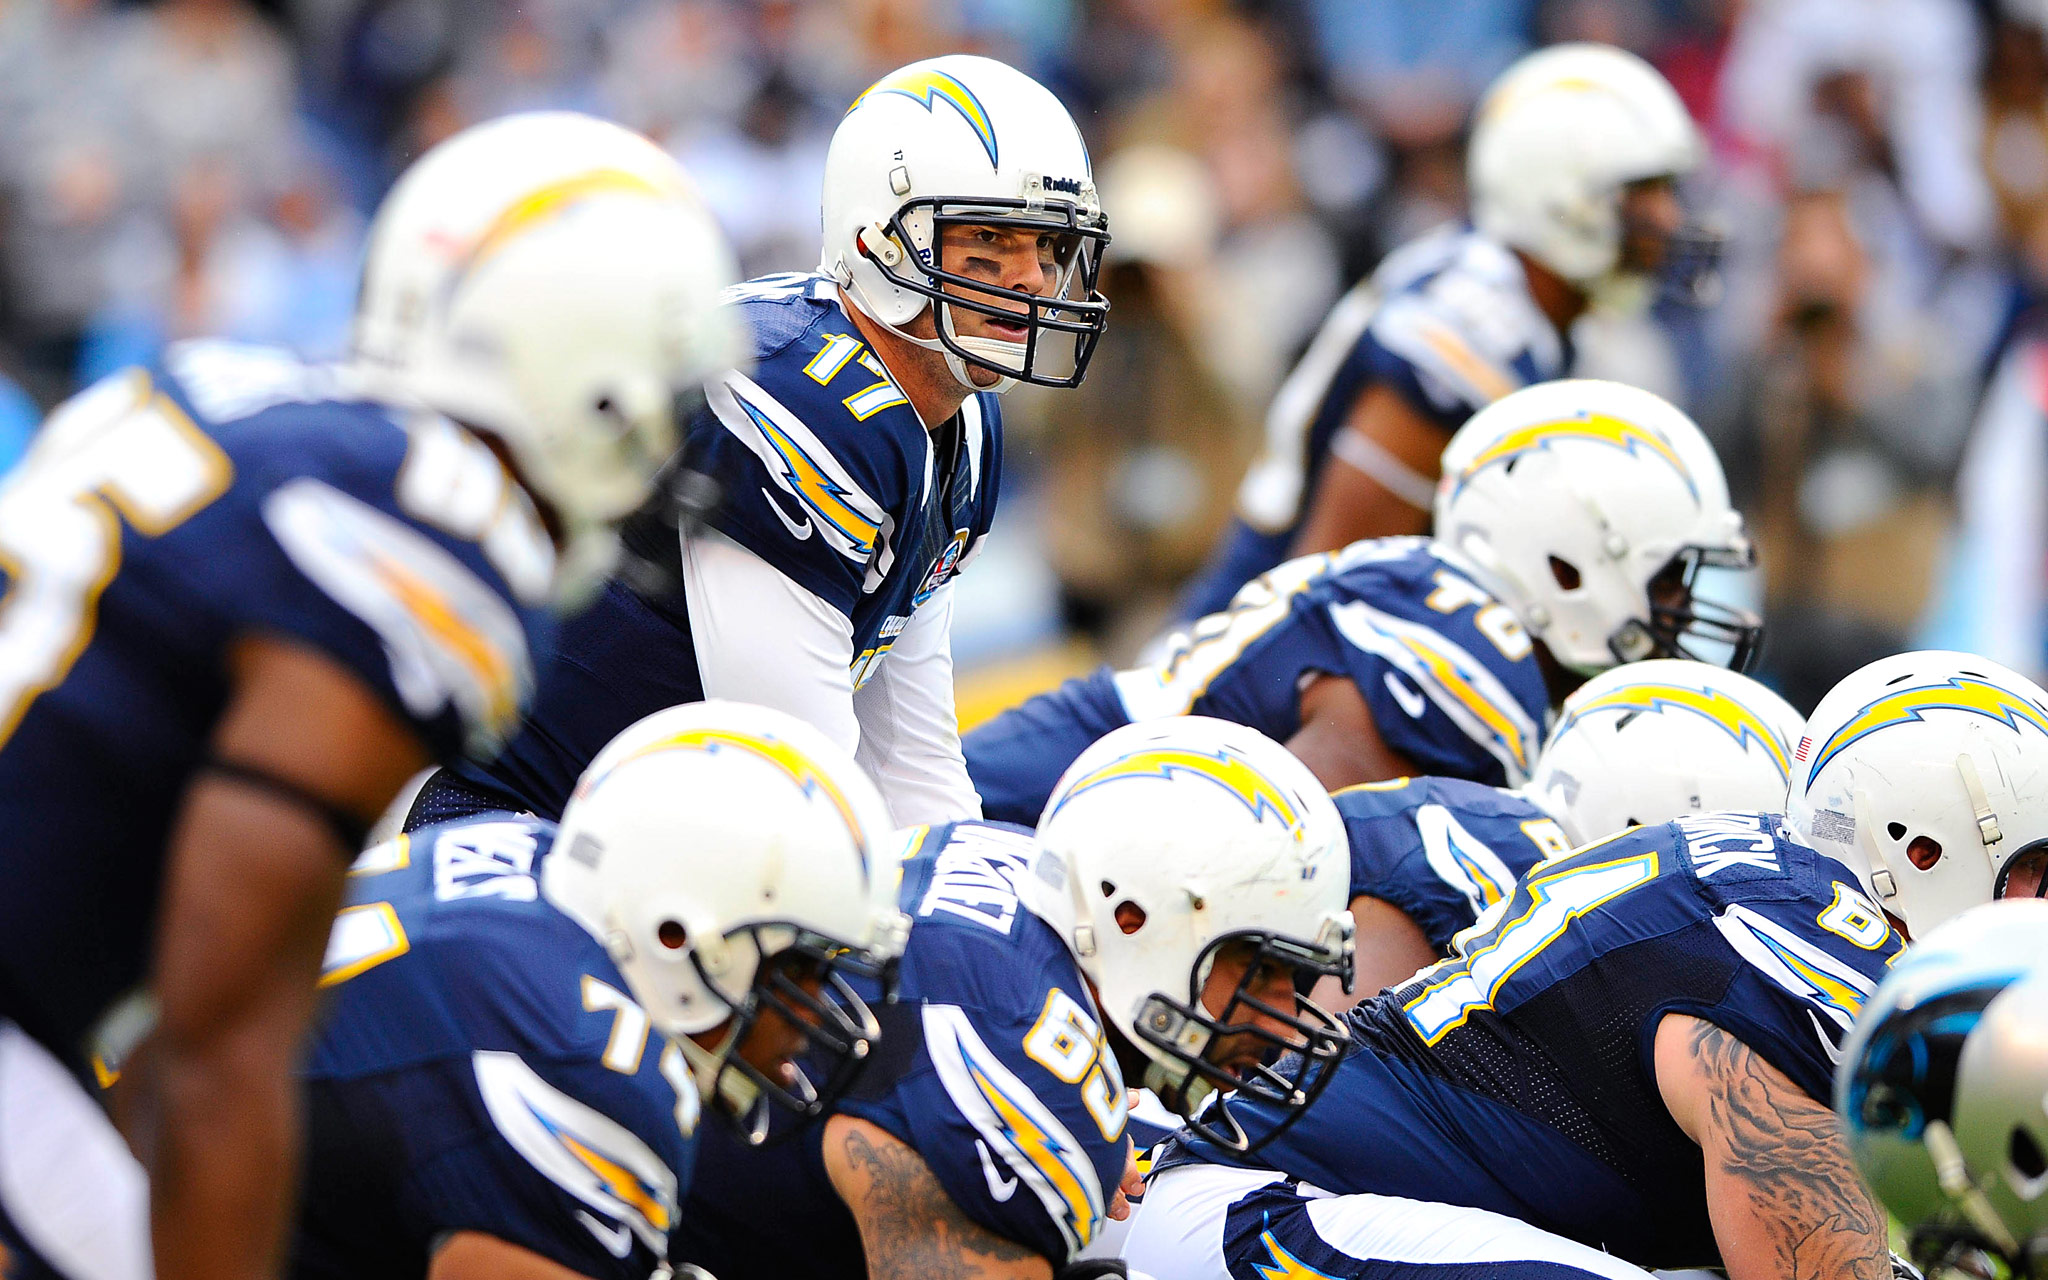 f2c8eaaf San Diego Chargers Vs. Minnesota Vikings Start Time, Preview, TV ...